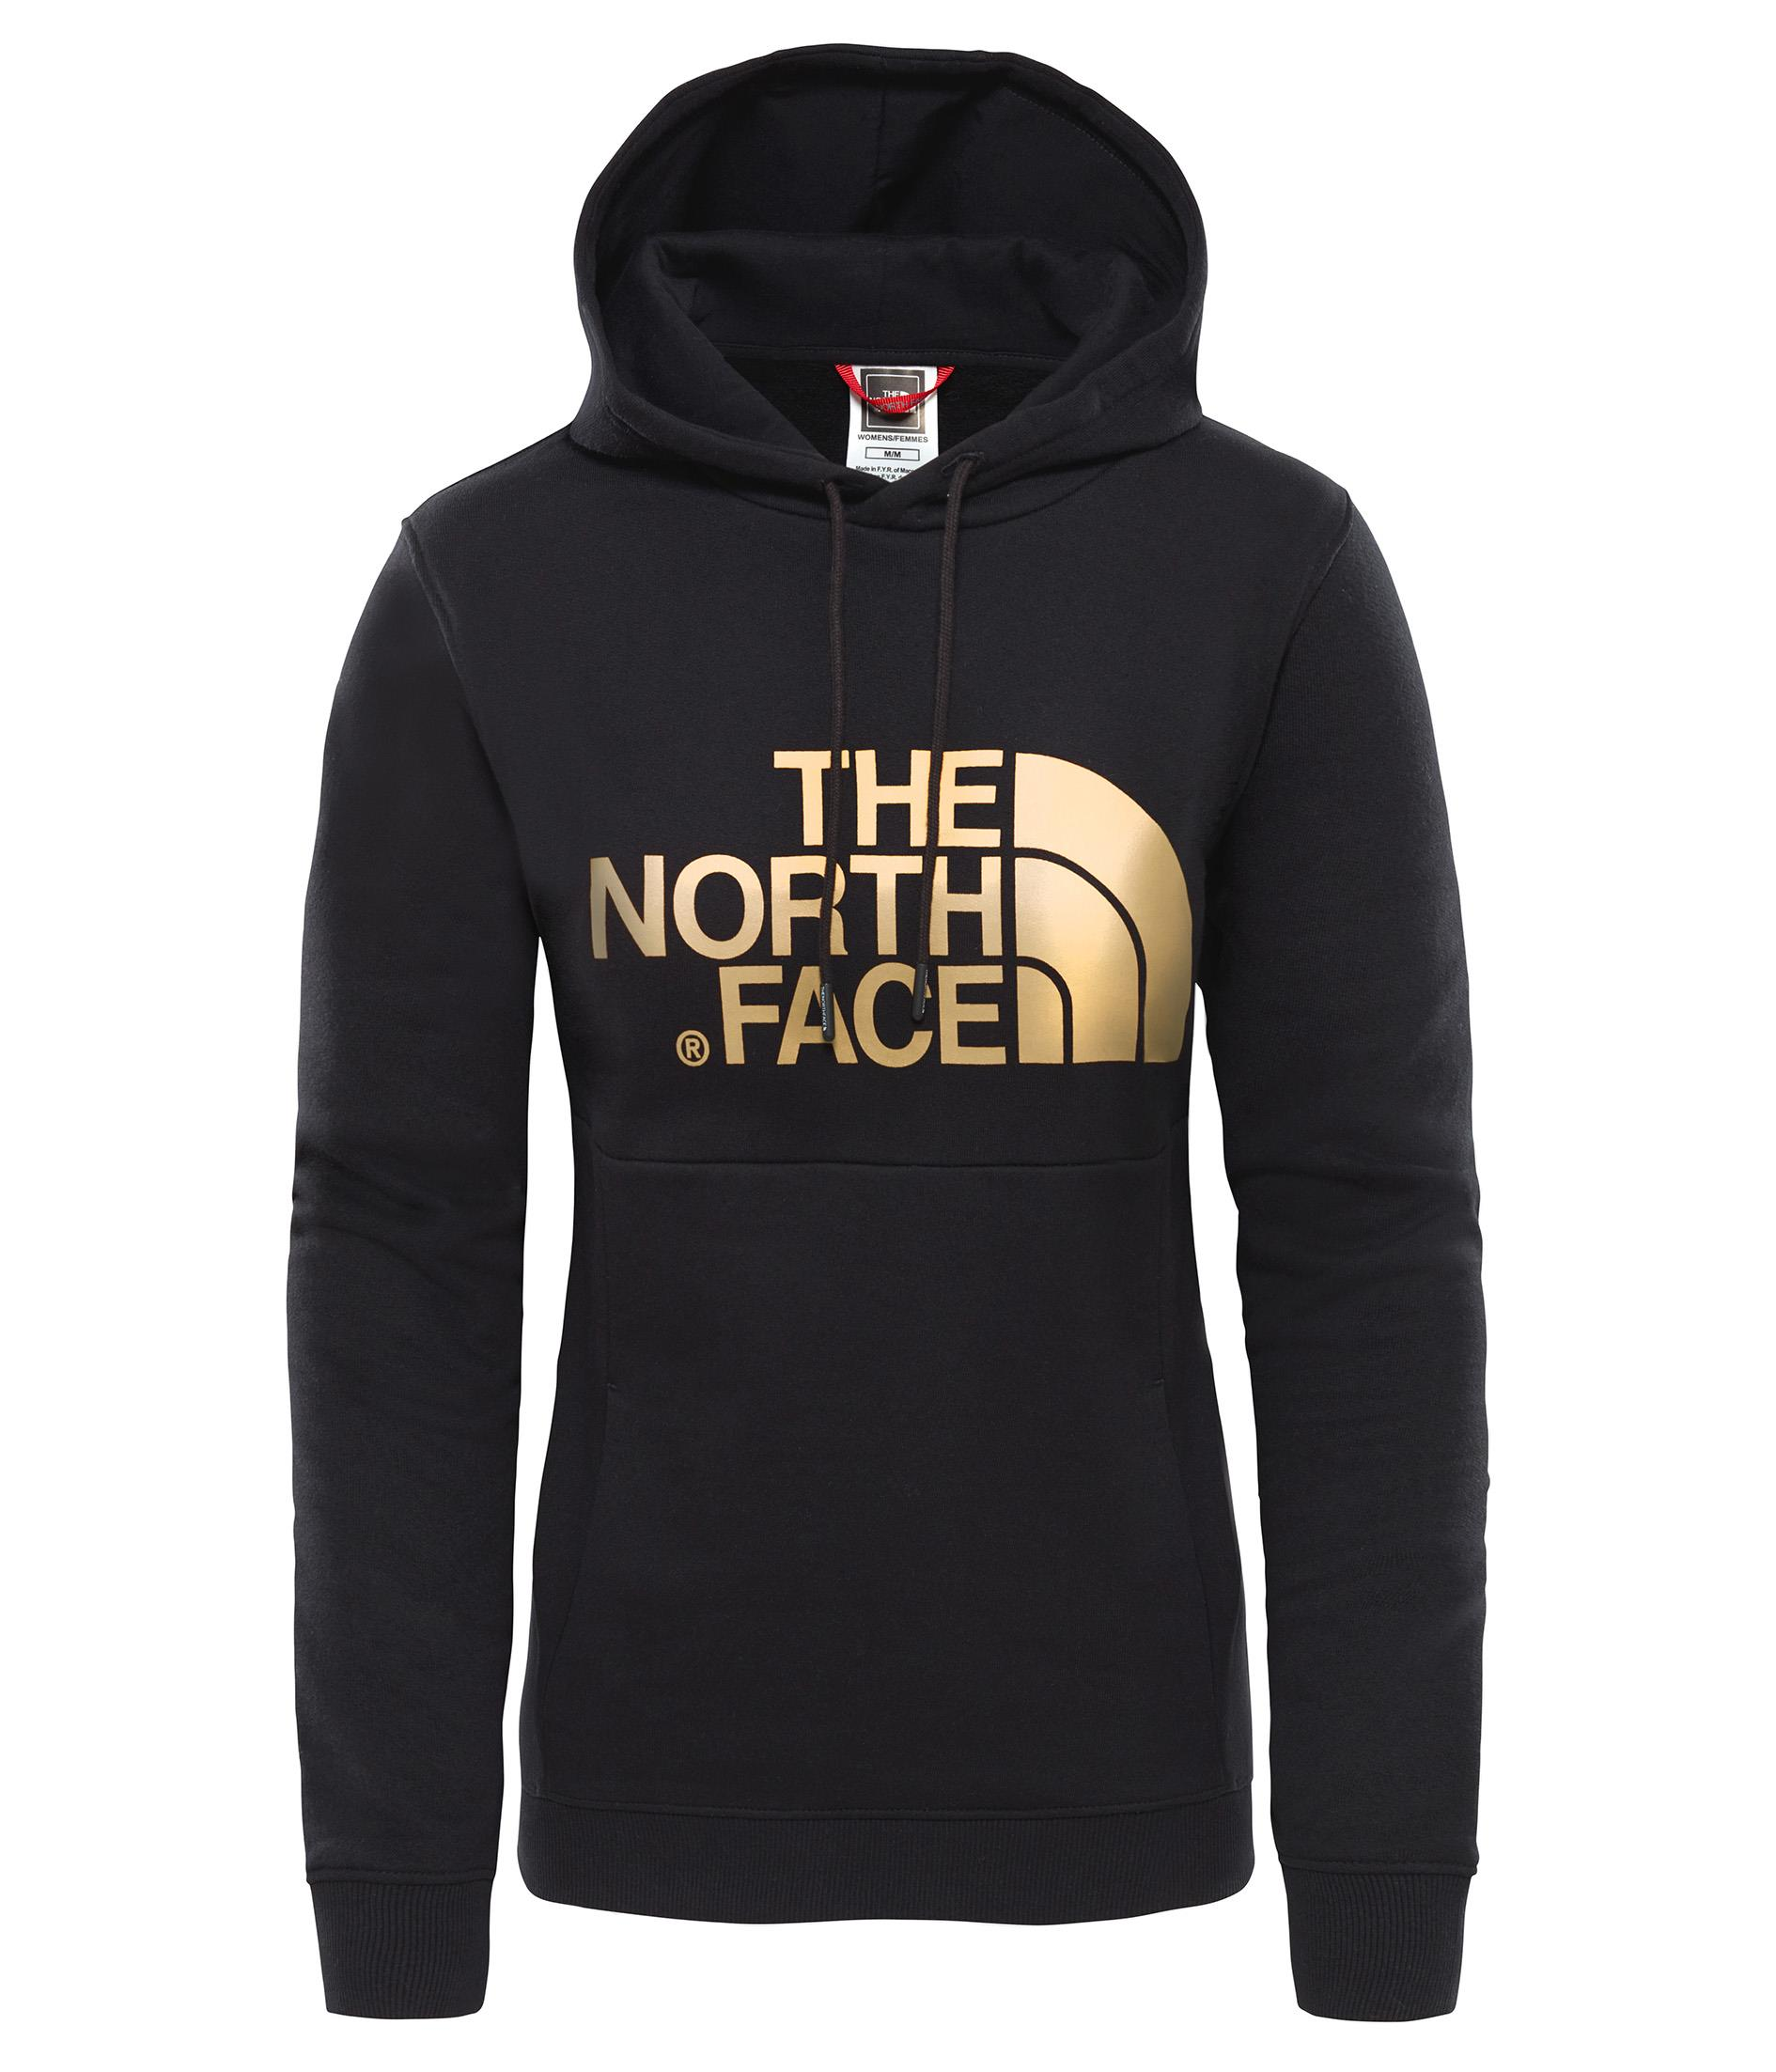 The North Face Kadın Drew Hoody Sweat Shirt